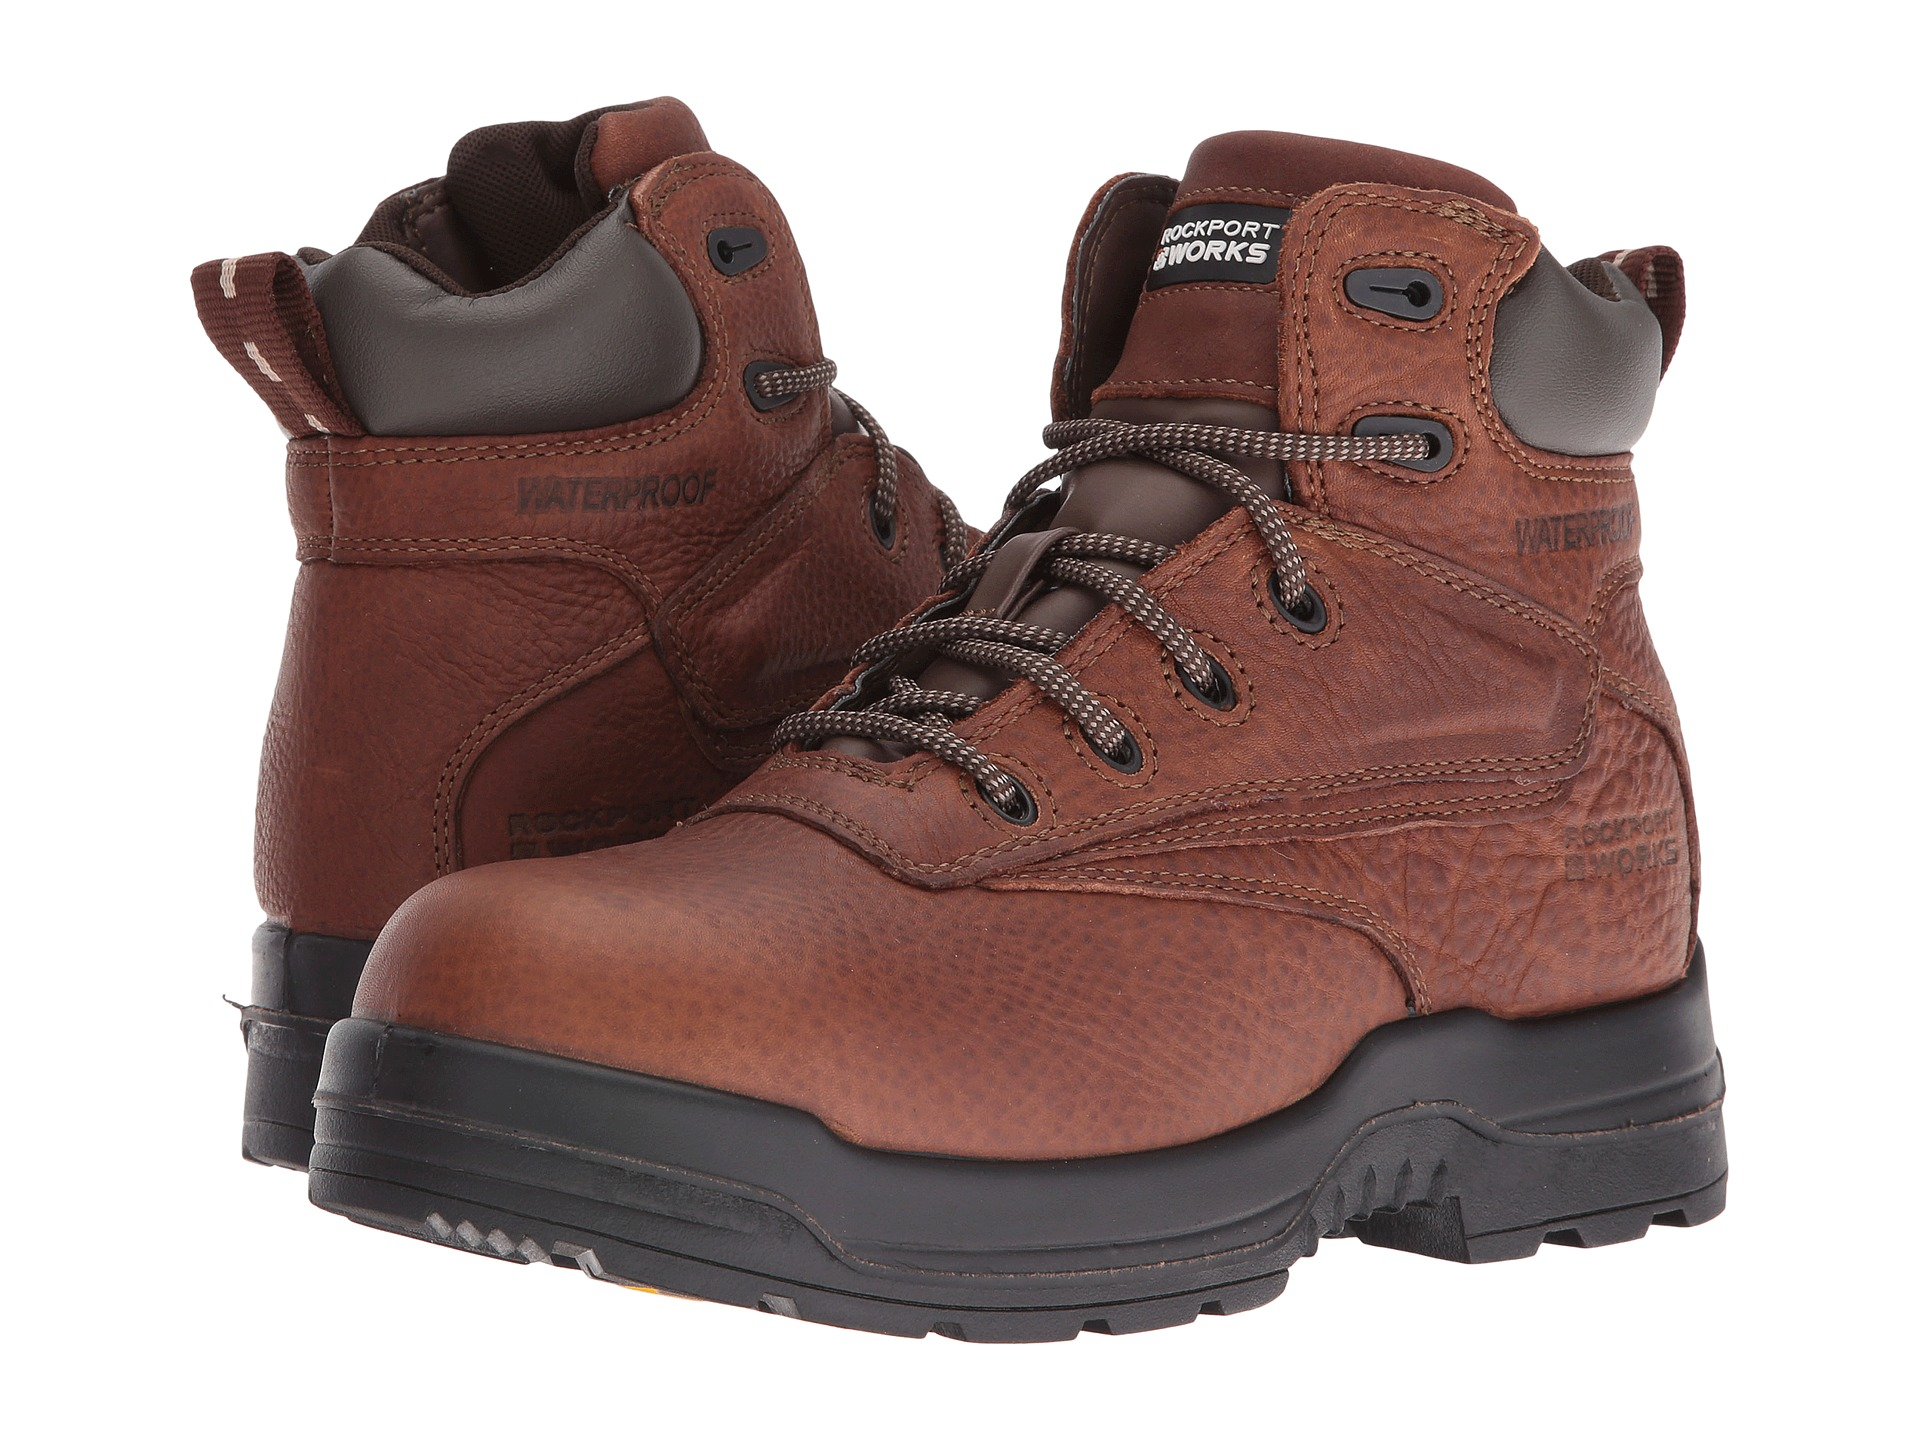 Extra Wide Work Boots Composite Toe | Shipped Free at Zappos